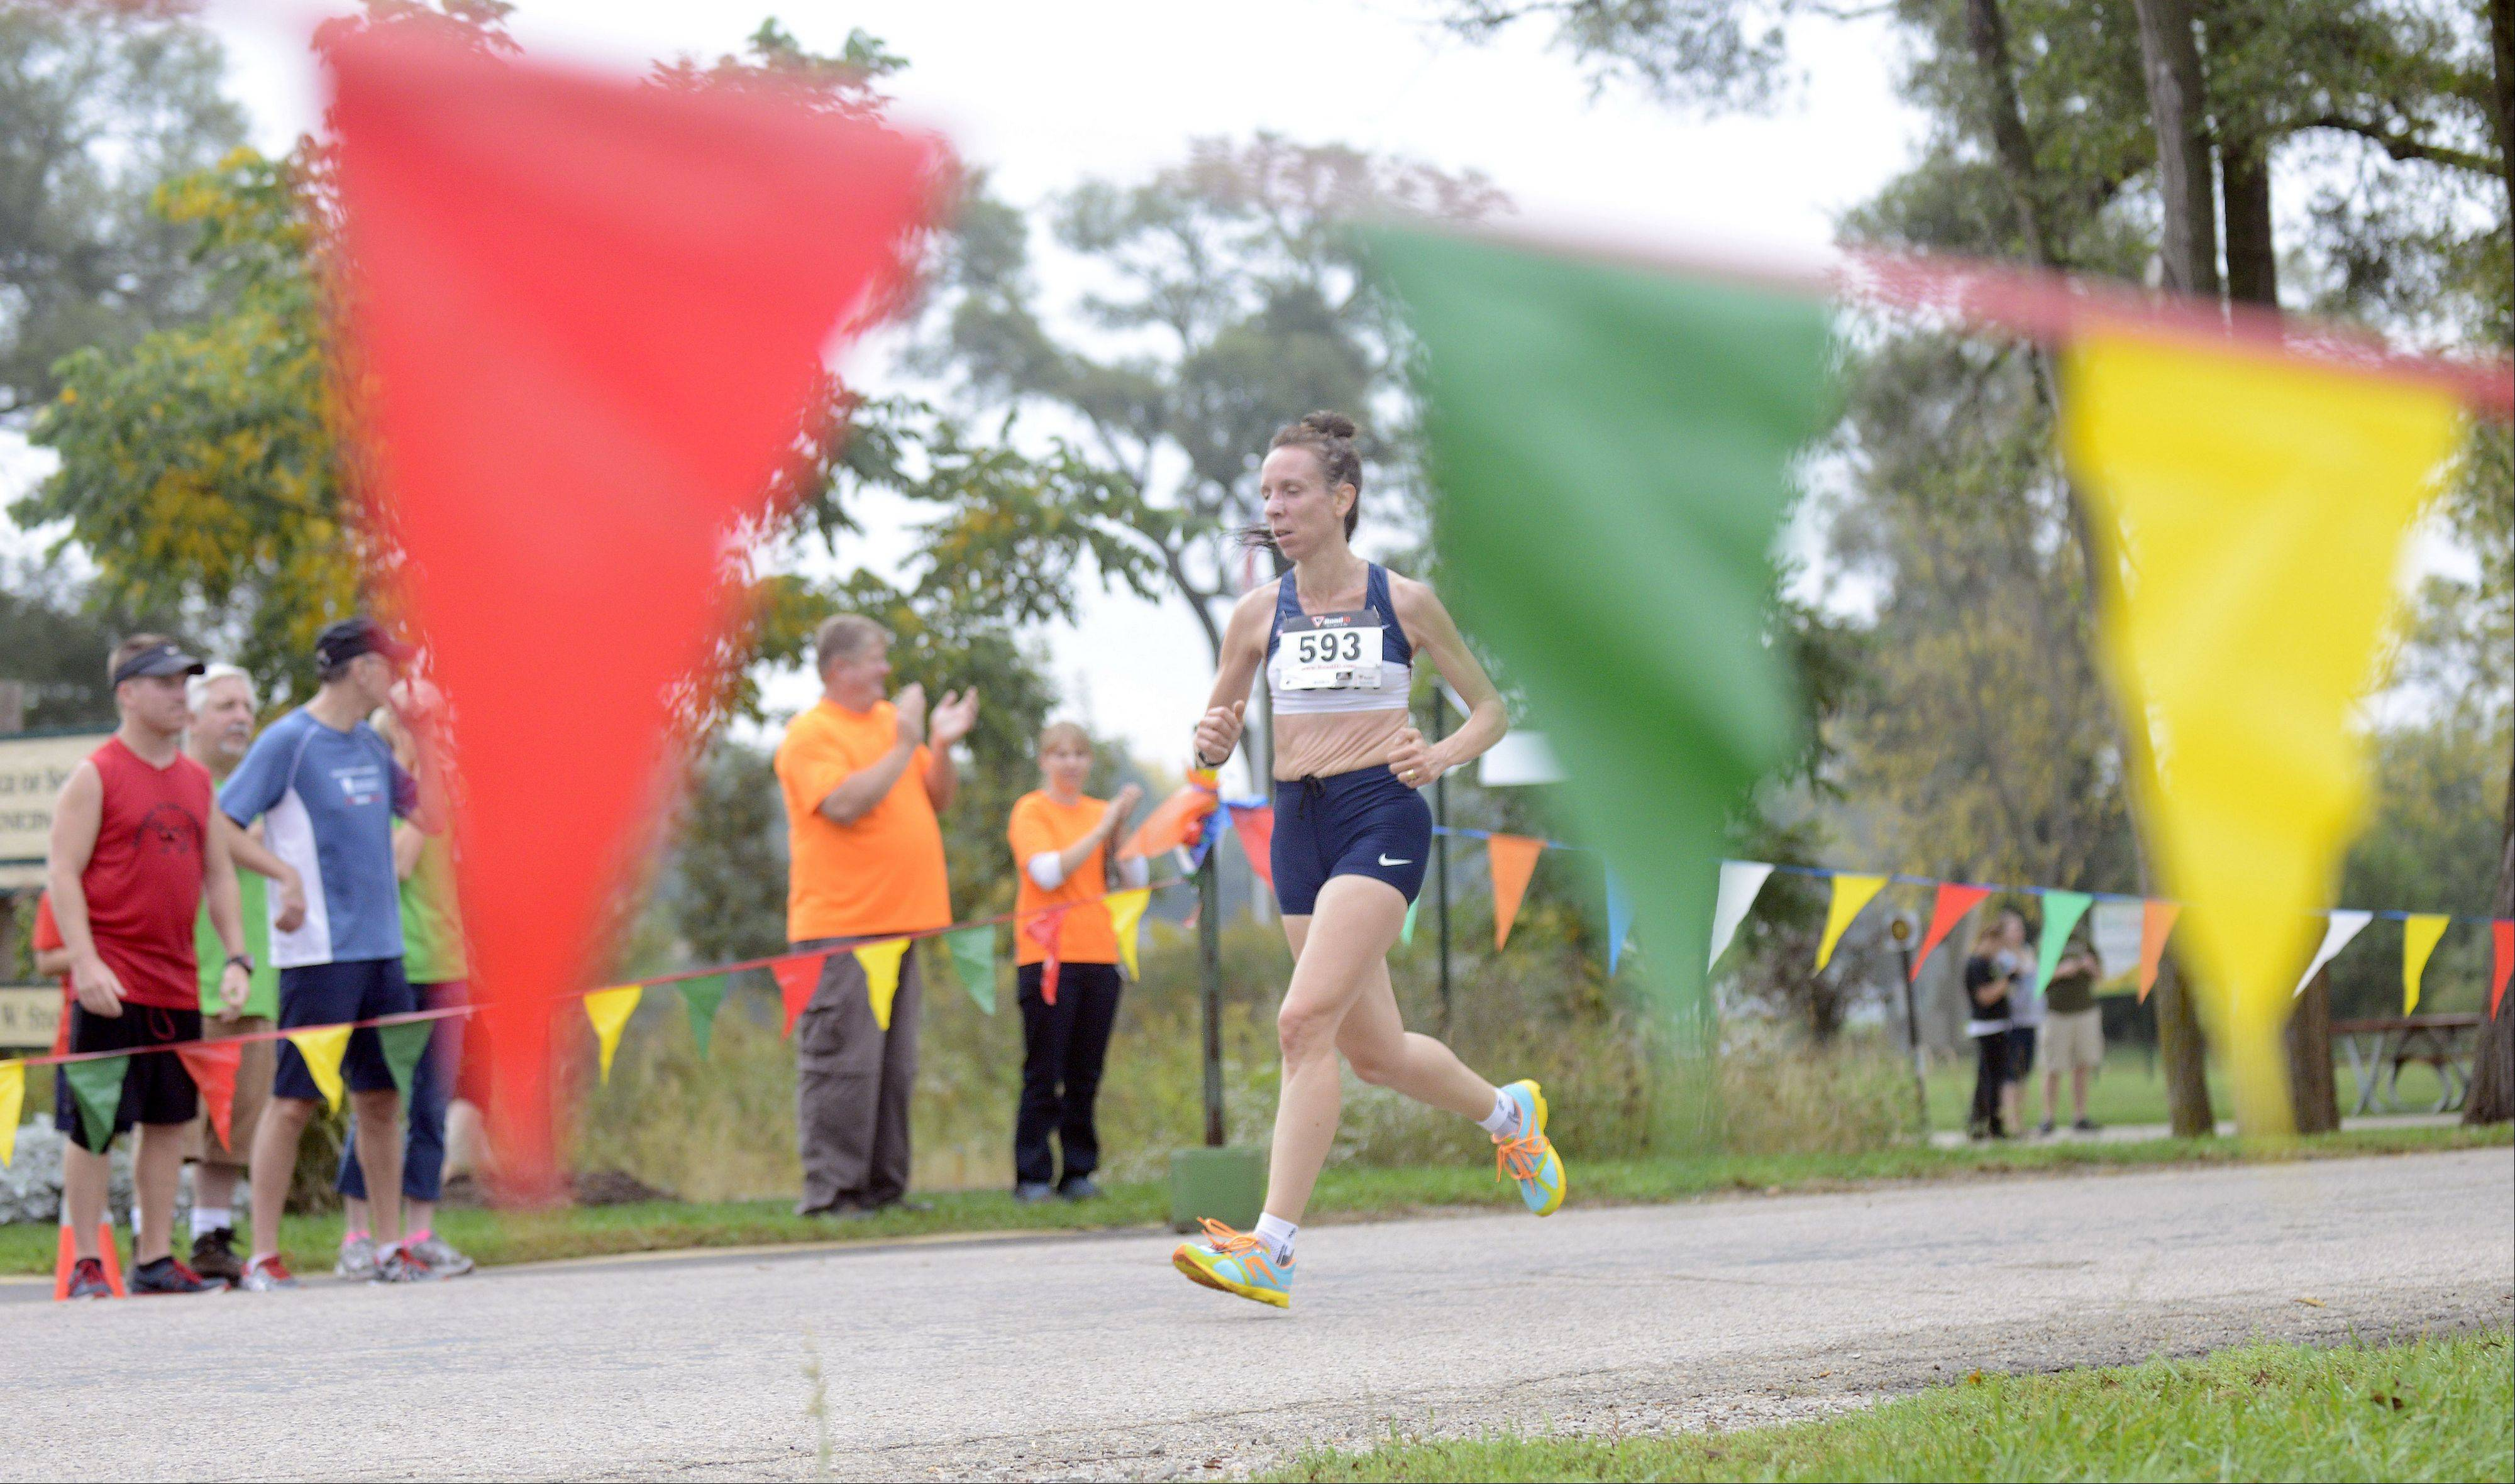 Julie Lee of South Elgin is the first female to cross the finishing line with a time of 33:28.4 in the South Elgin Parks & Recreation FUNdation ninth annual Harvest Hustle 7K Run and 2-Mile Walk on Saturday. Lee has participated in the run for eight years.